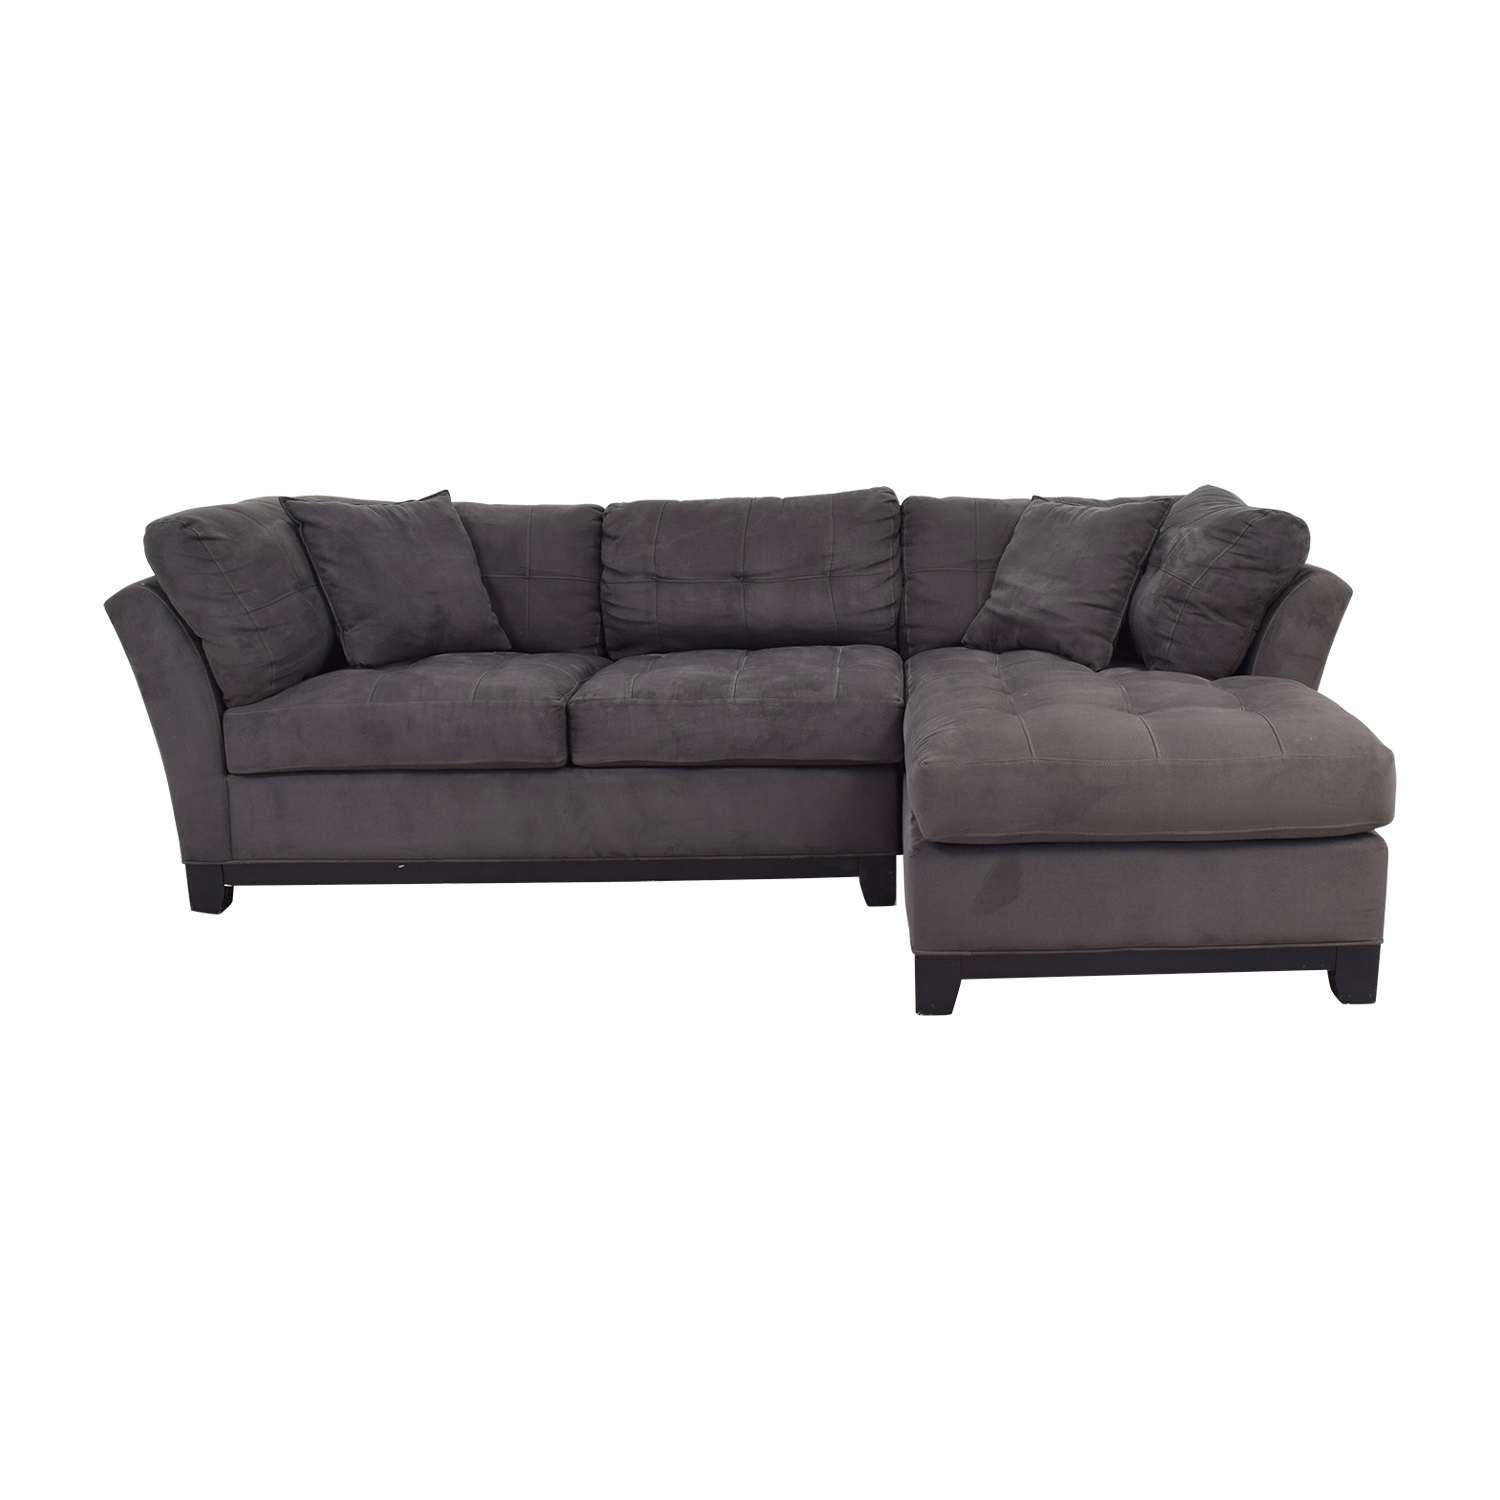 Pleasant 74 Off Raymour Flanigan Raymour Flanigan Charcoal Tufted Chaise Sectional Sofas Bralicious Painted Fabric Chair Ideas Braliciousco